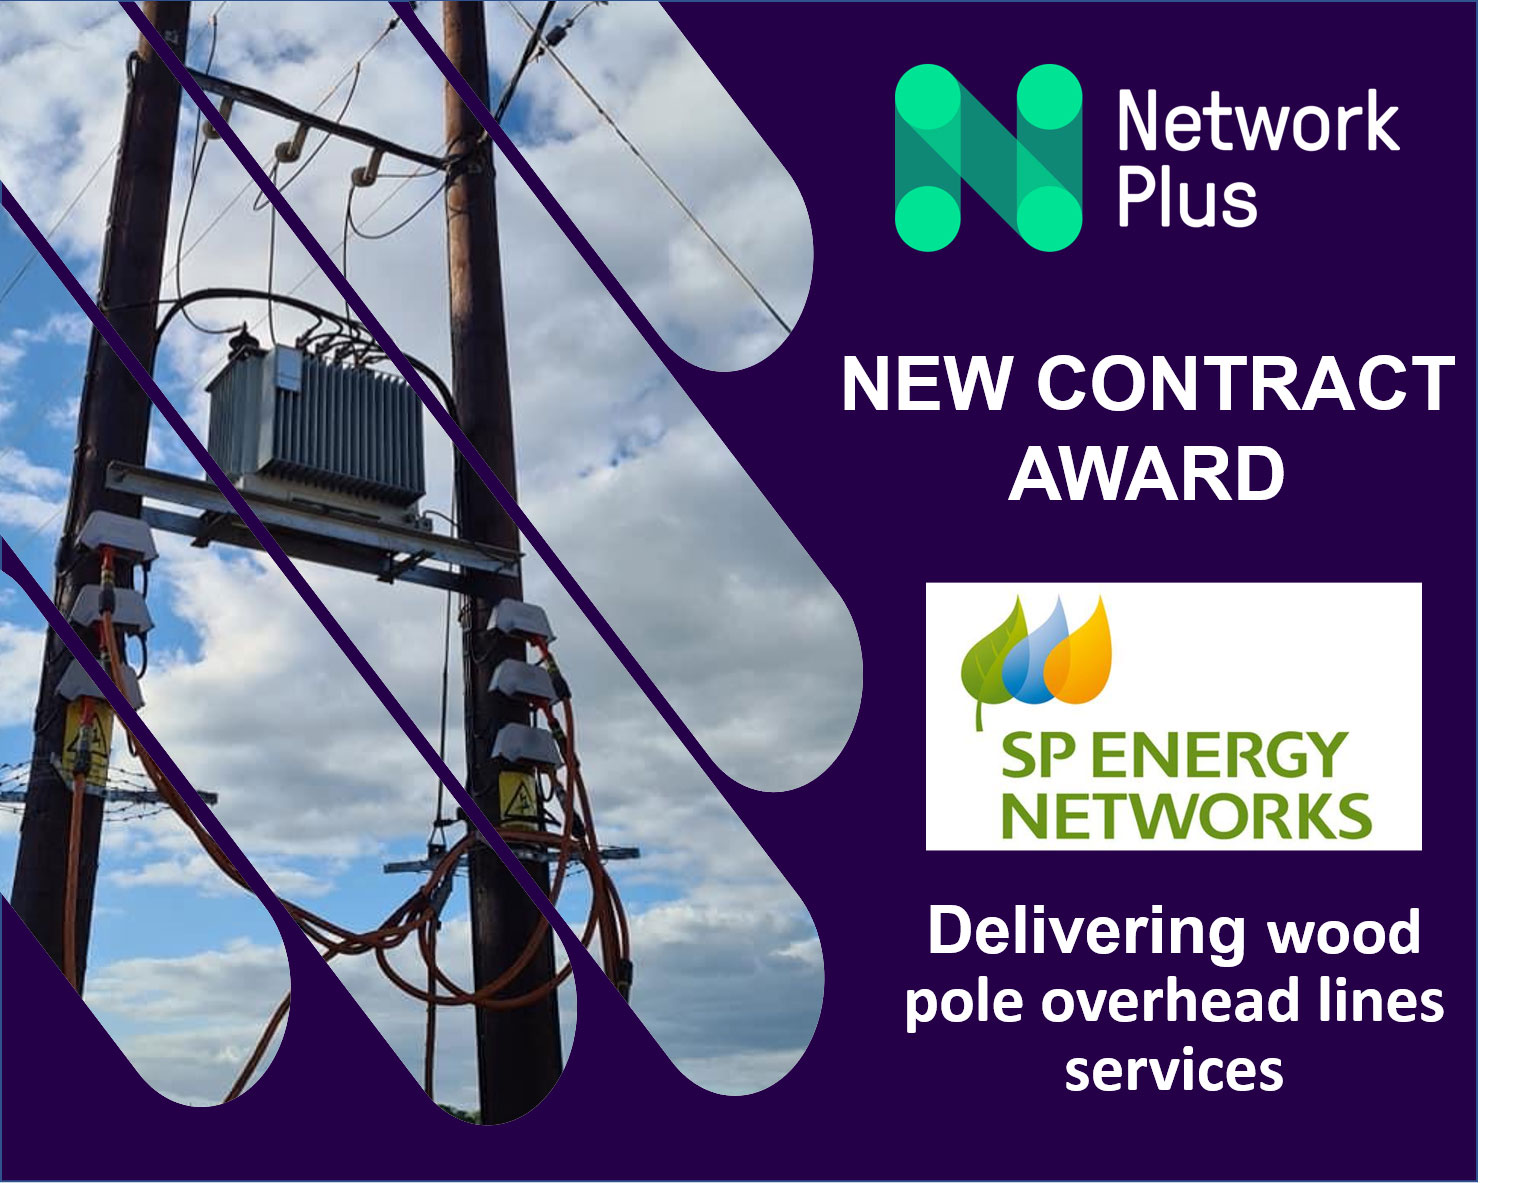 Scottish Power Energy Networks appoints Network Plus for Wood pole overhead lines contract in the Manweb licence area